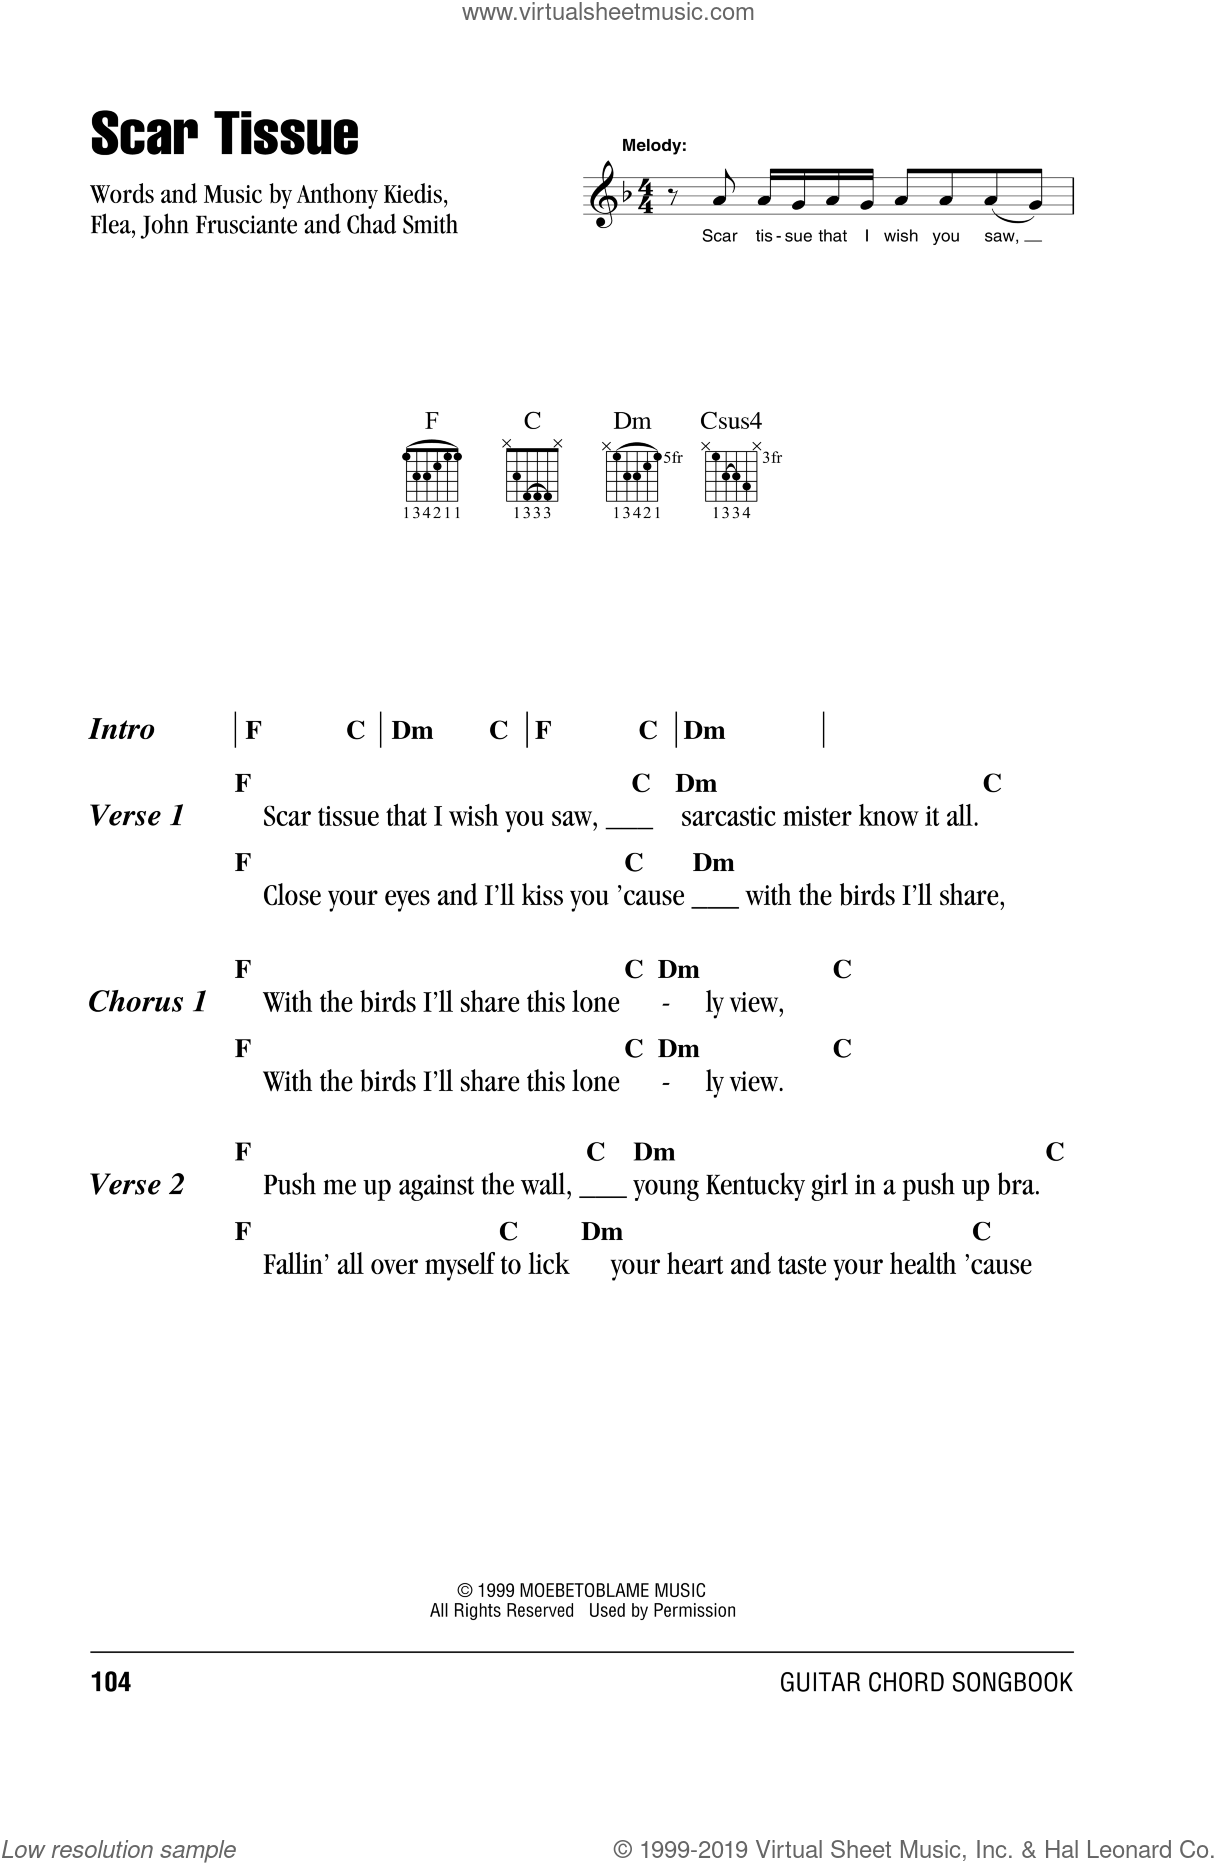 Scar Tissue sheet music for guitar (chords) by Red Hot Chili Peppers, Anthony Kiedis, Chad Smith, Flea and John Frusciante, intermediate skill level